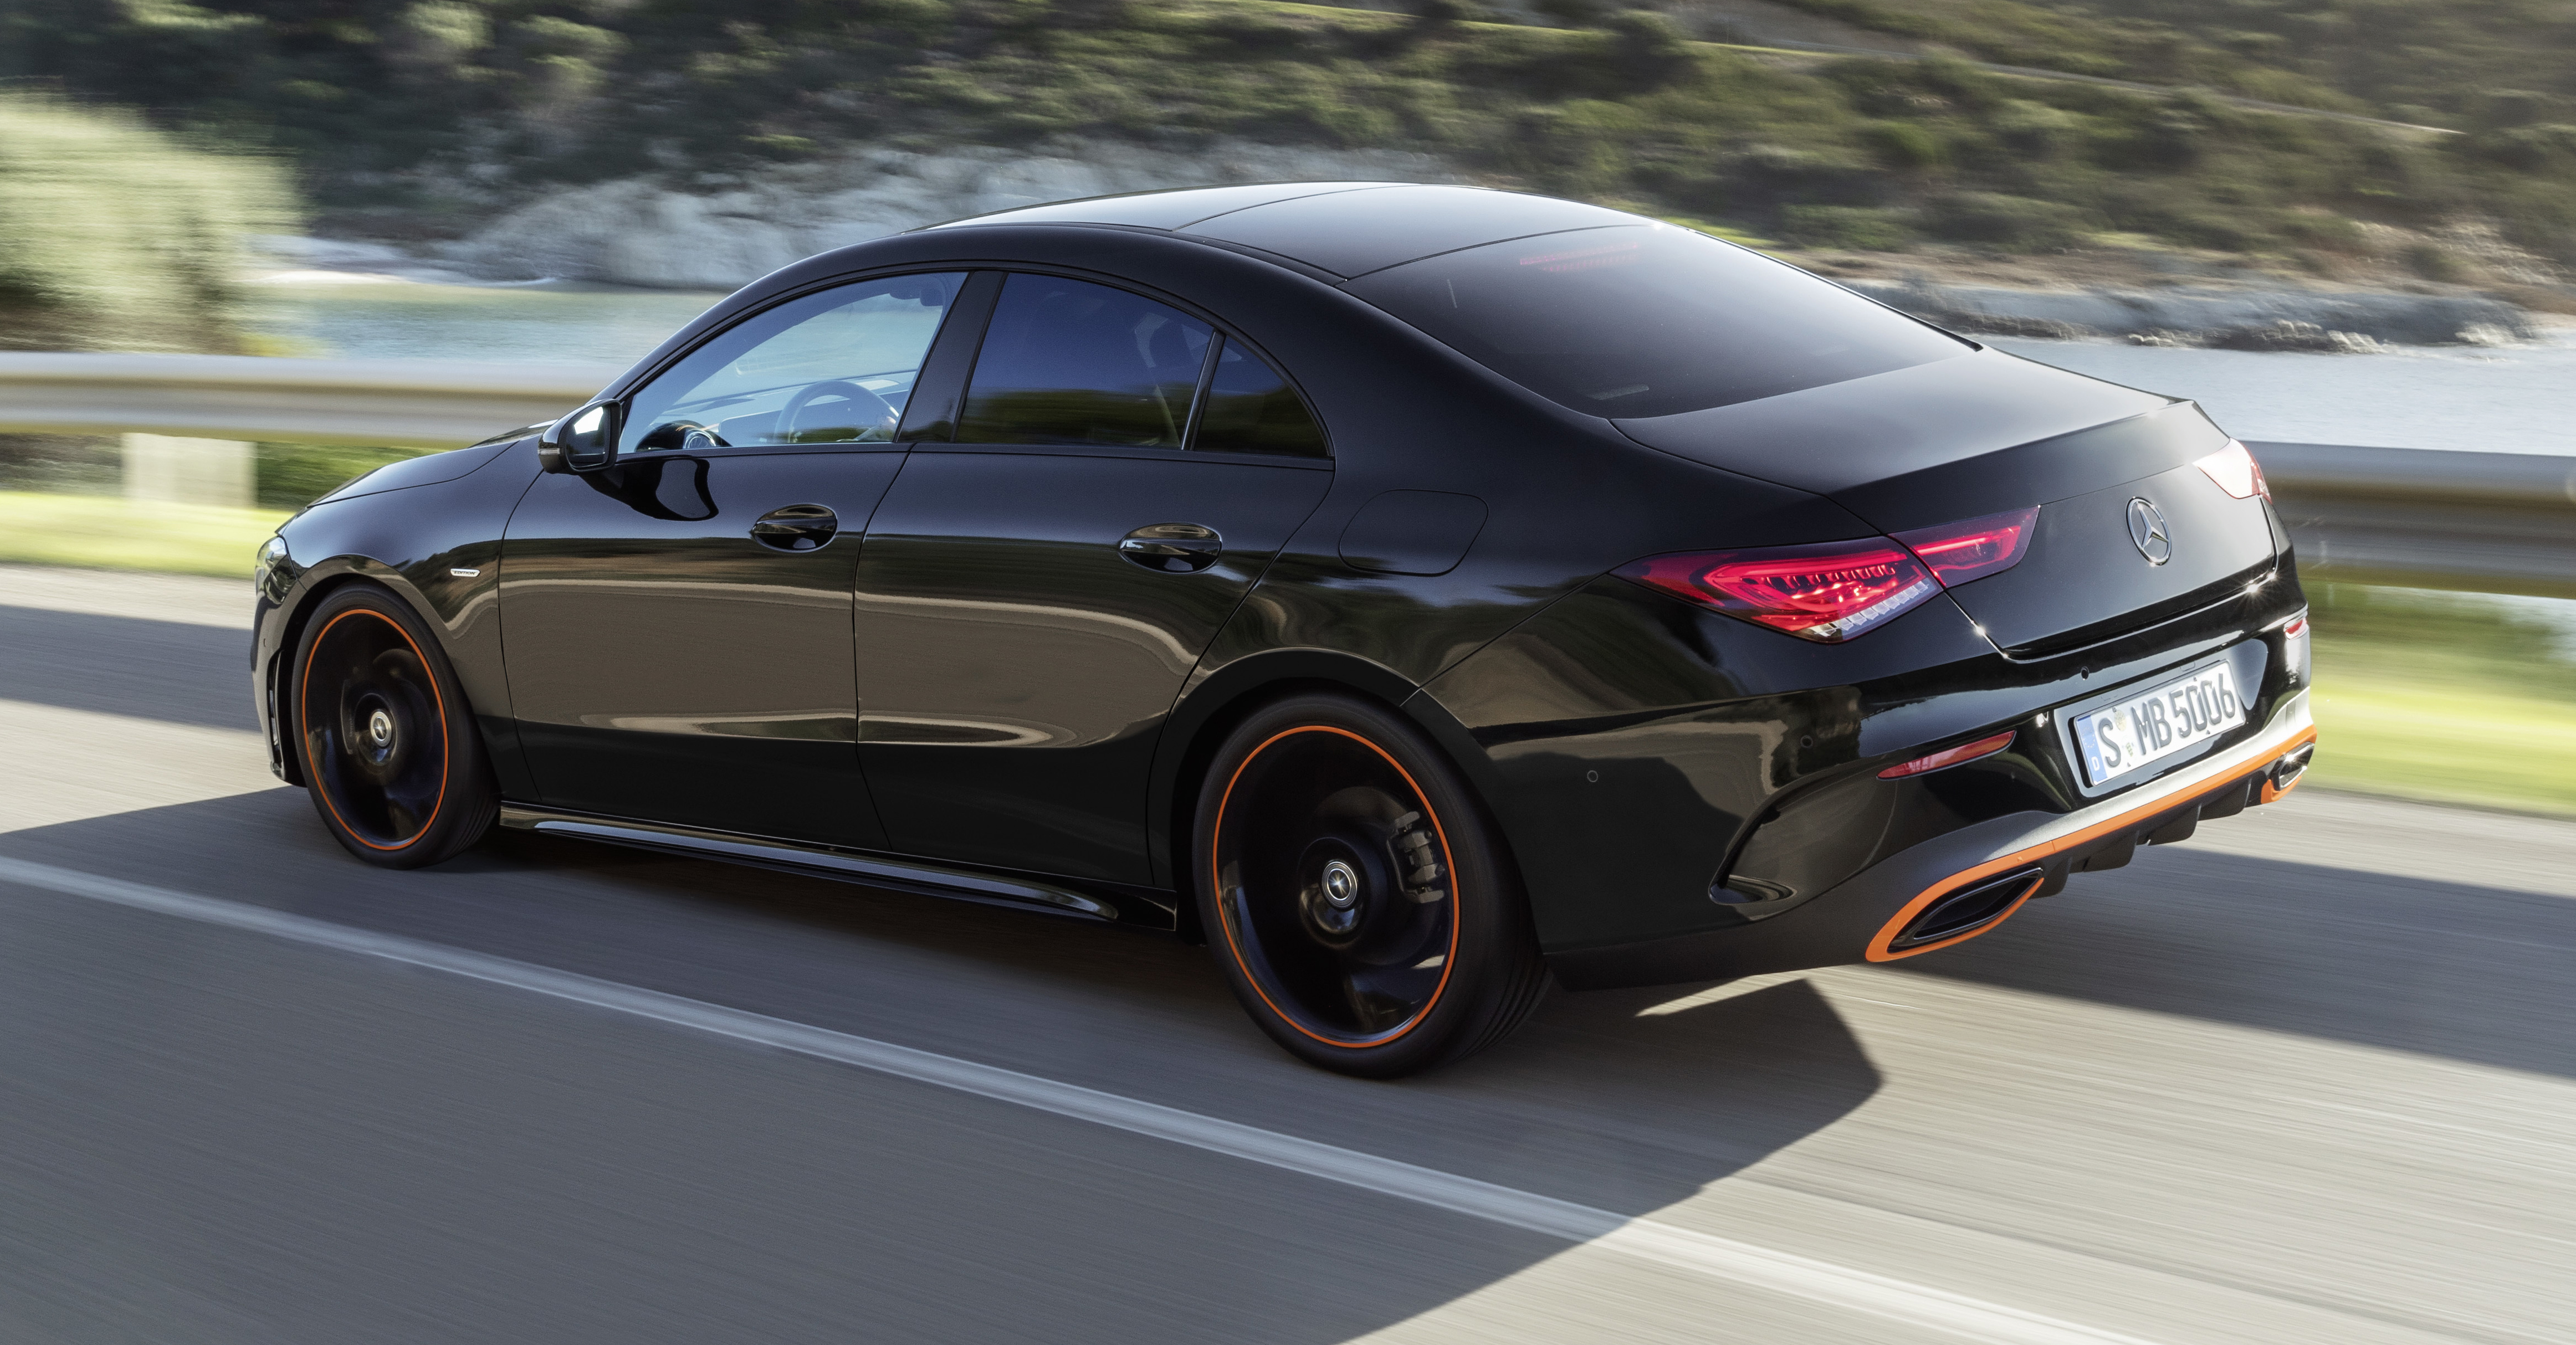 Mercedes CLA Shooting Brake (X118) exterior specifications